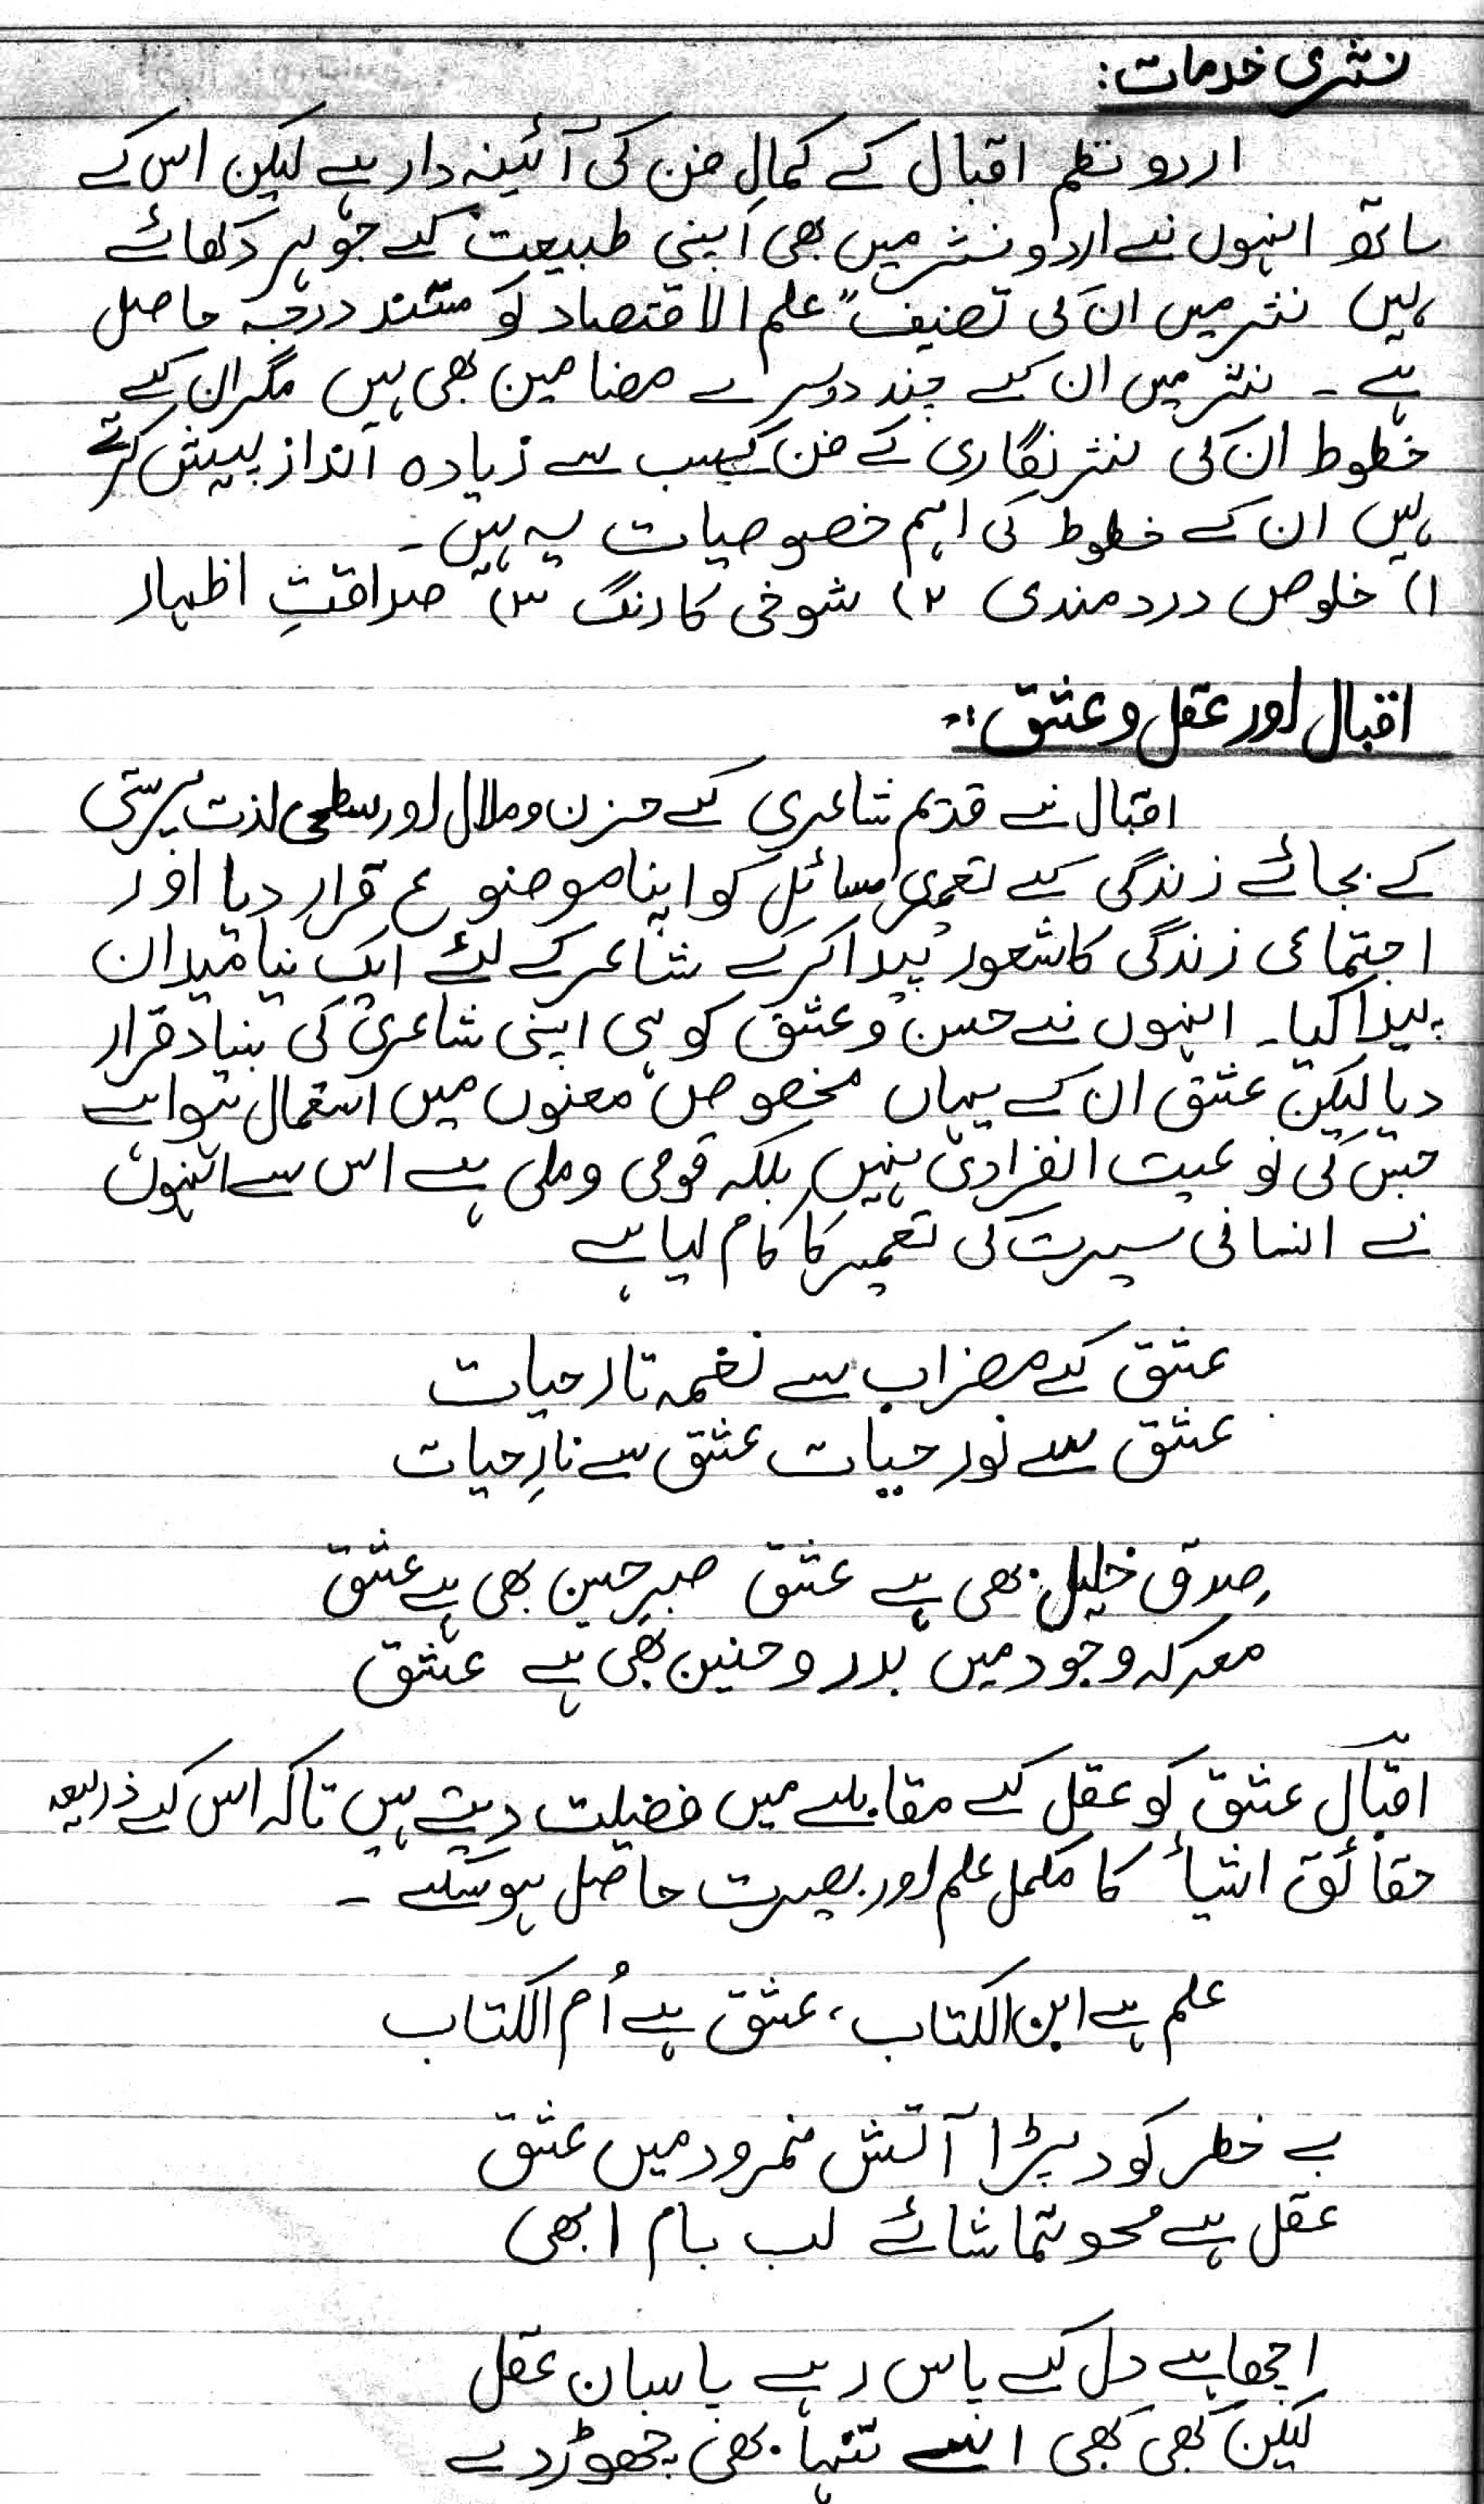 029 Grade Essay Topics Jpg Imposing 7 Narrative Urdu 1920